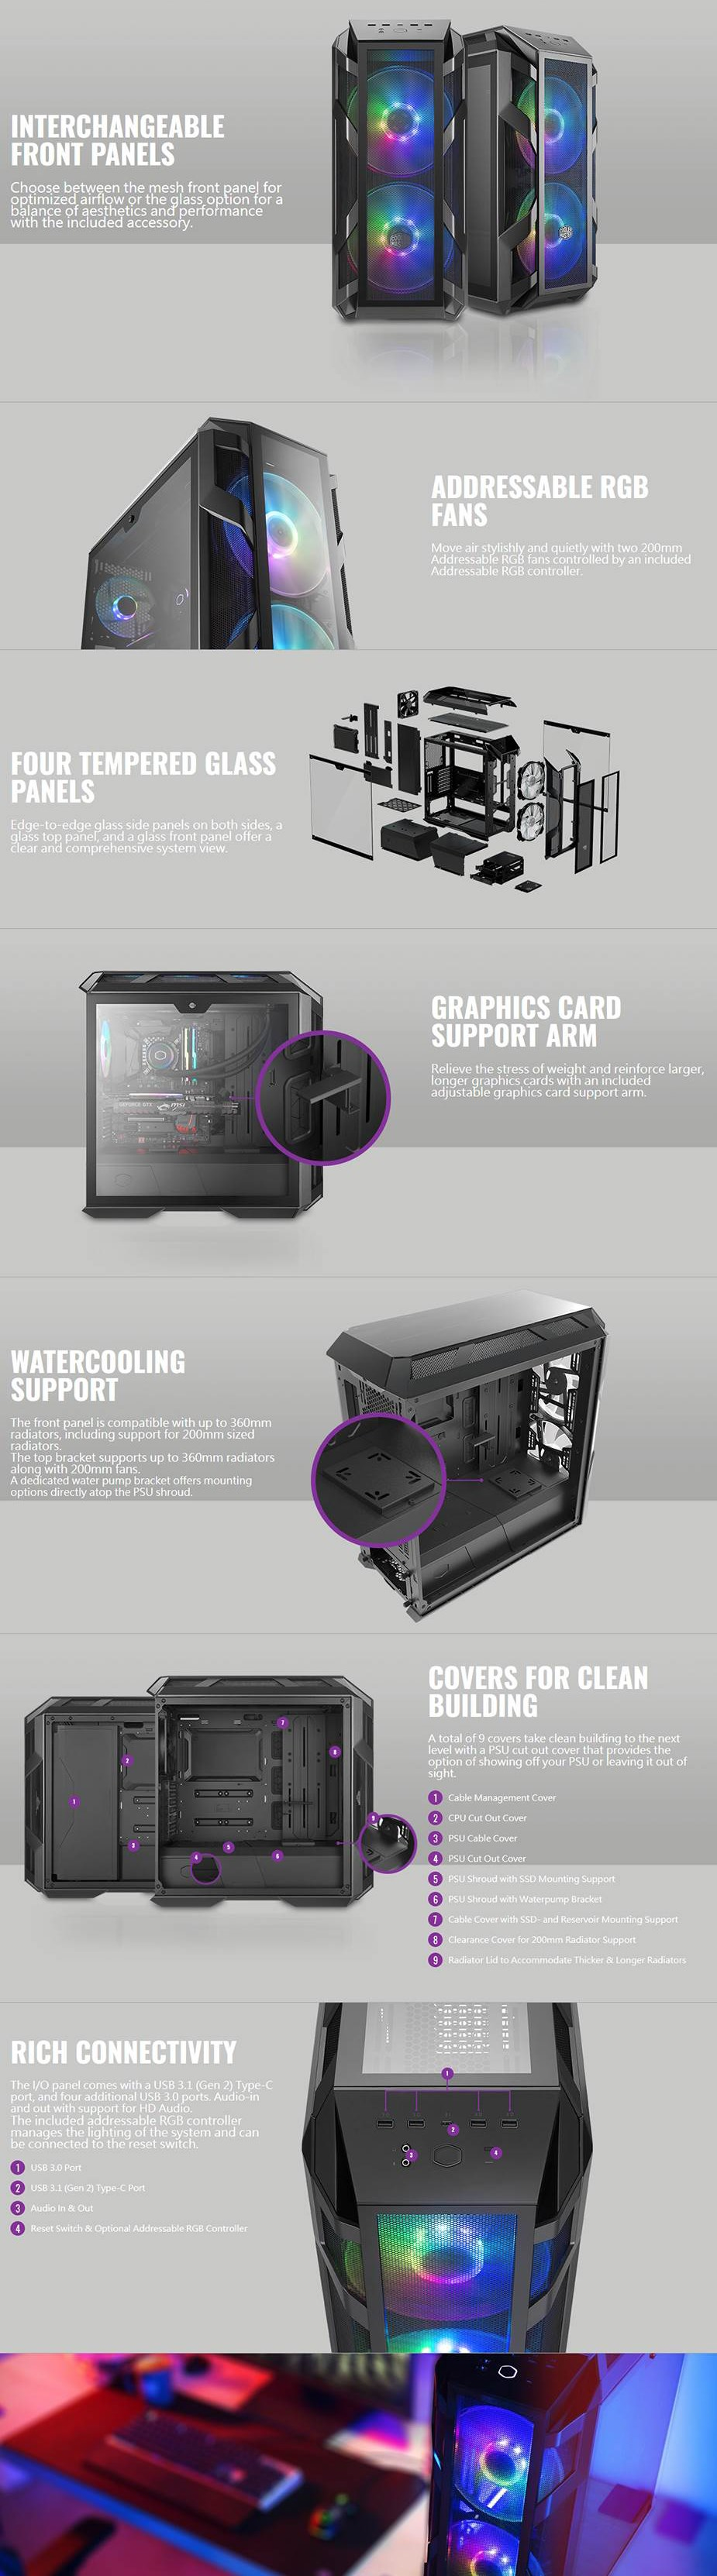 Cooler Master Mastercase H500M RGB Tempered Glass E-ATX Mid-Tower Case - Desktop Overview 1